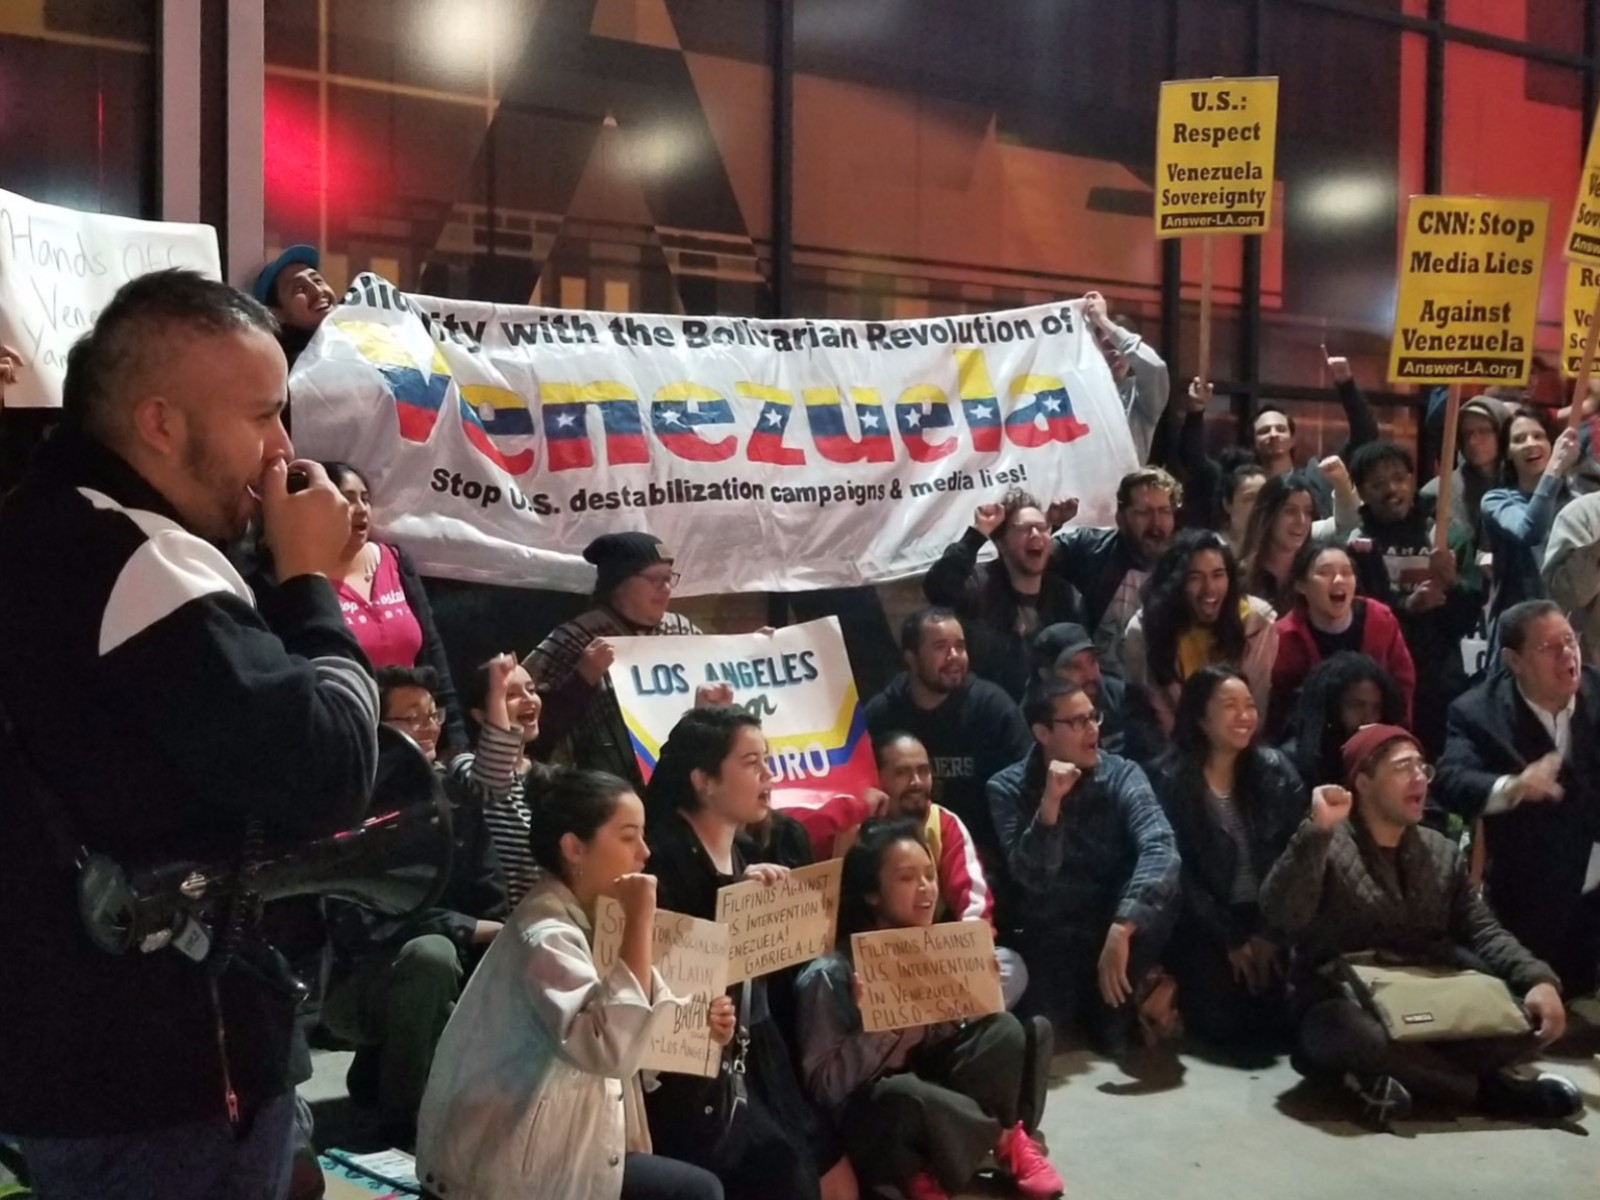 Los Angeles rally in solidarity with Venezuela